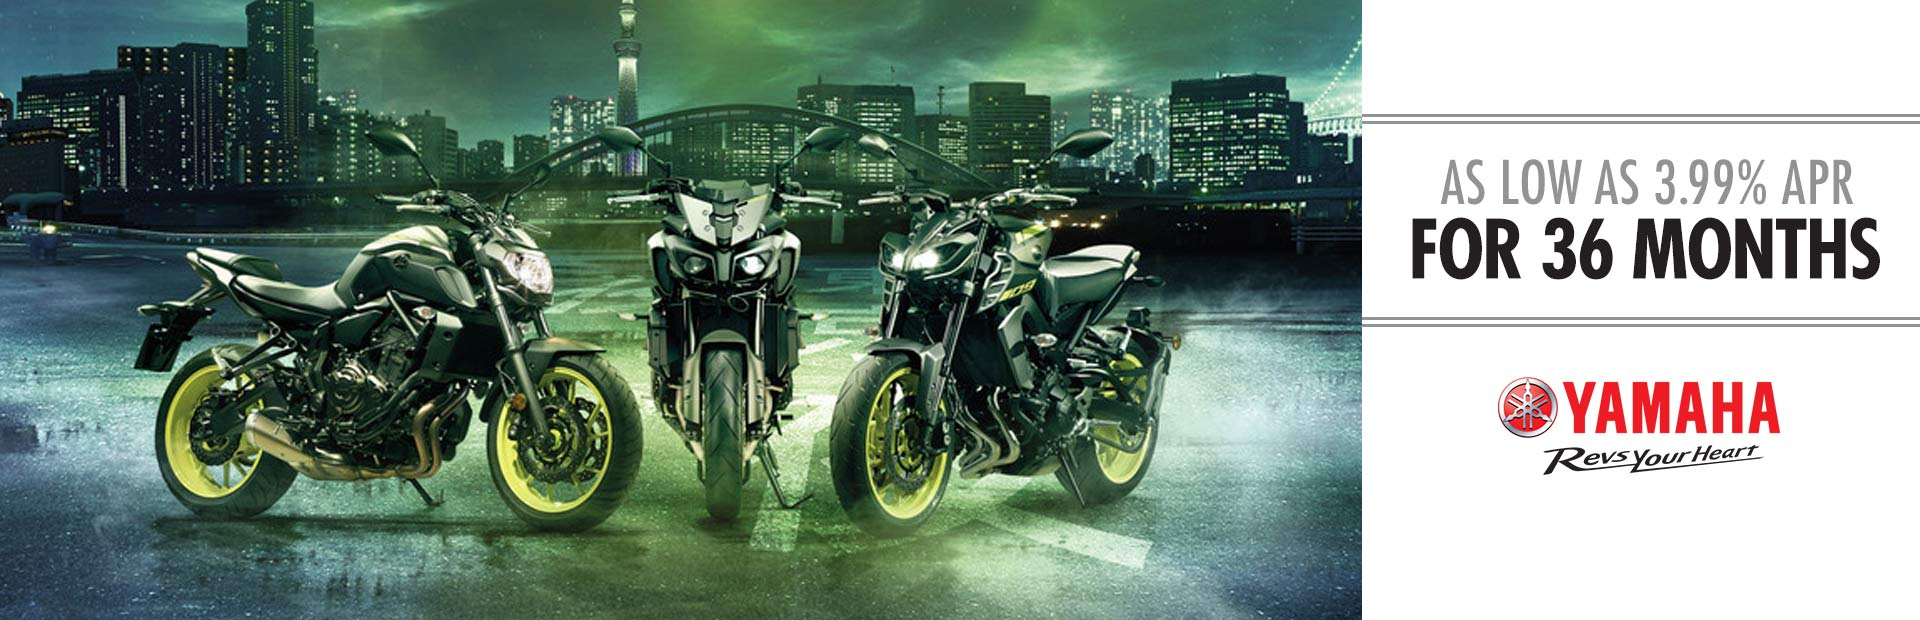 Yamaha: As Low As 3.99% APR For 36 Months (Street Bikes)